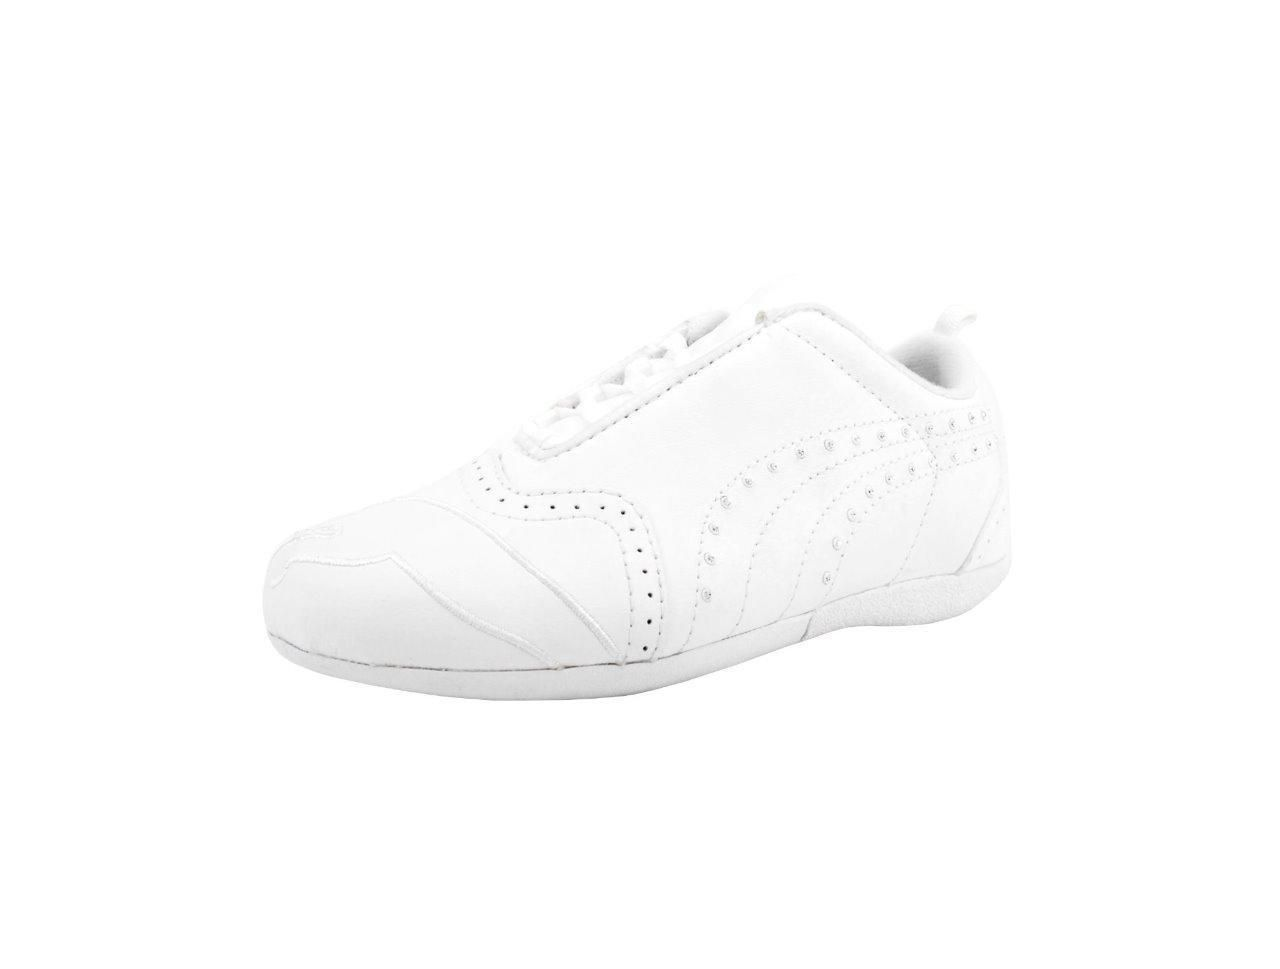 d4bf8c72cb8e Old Soles Boy's and Girl's Leather Urban Code Lace Up Tri Colored ...